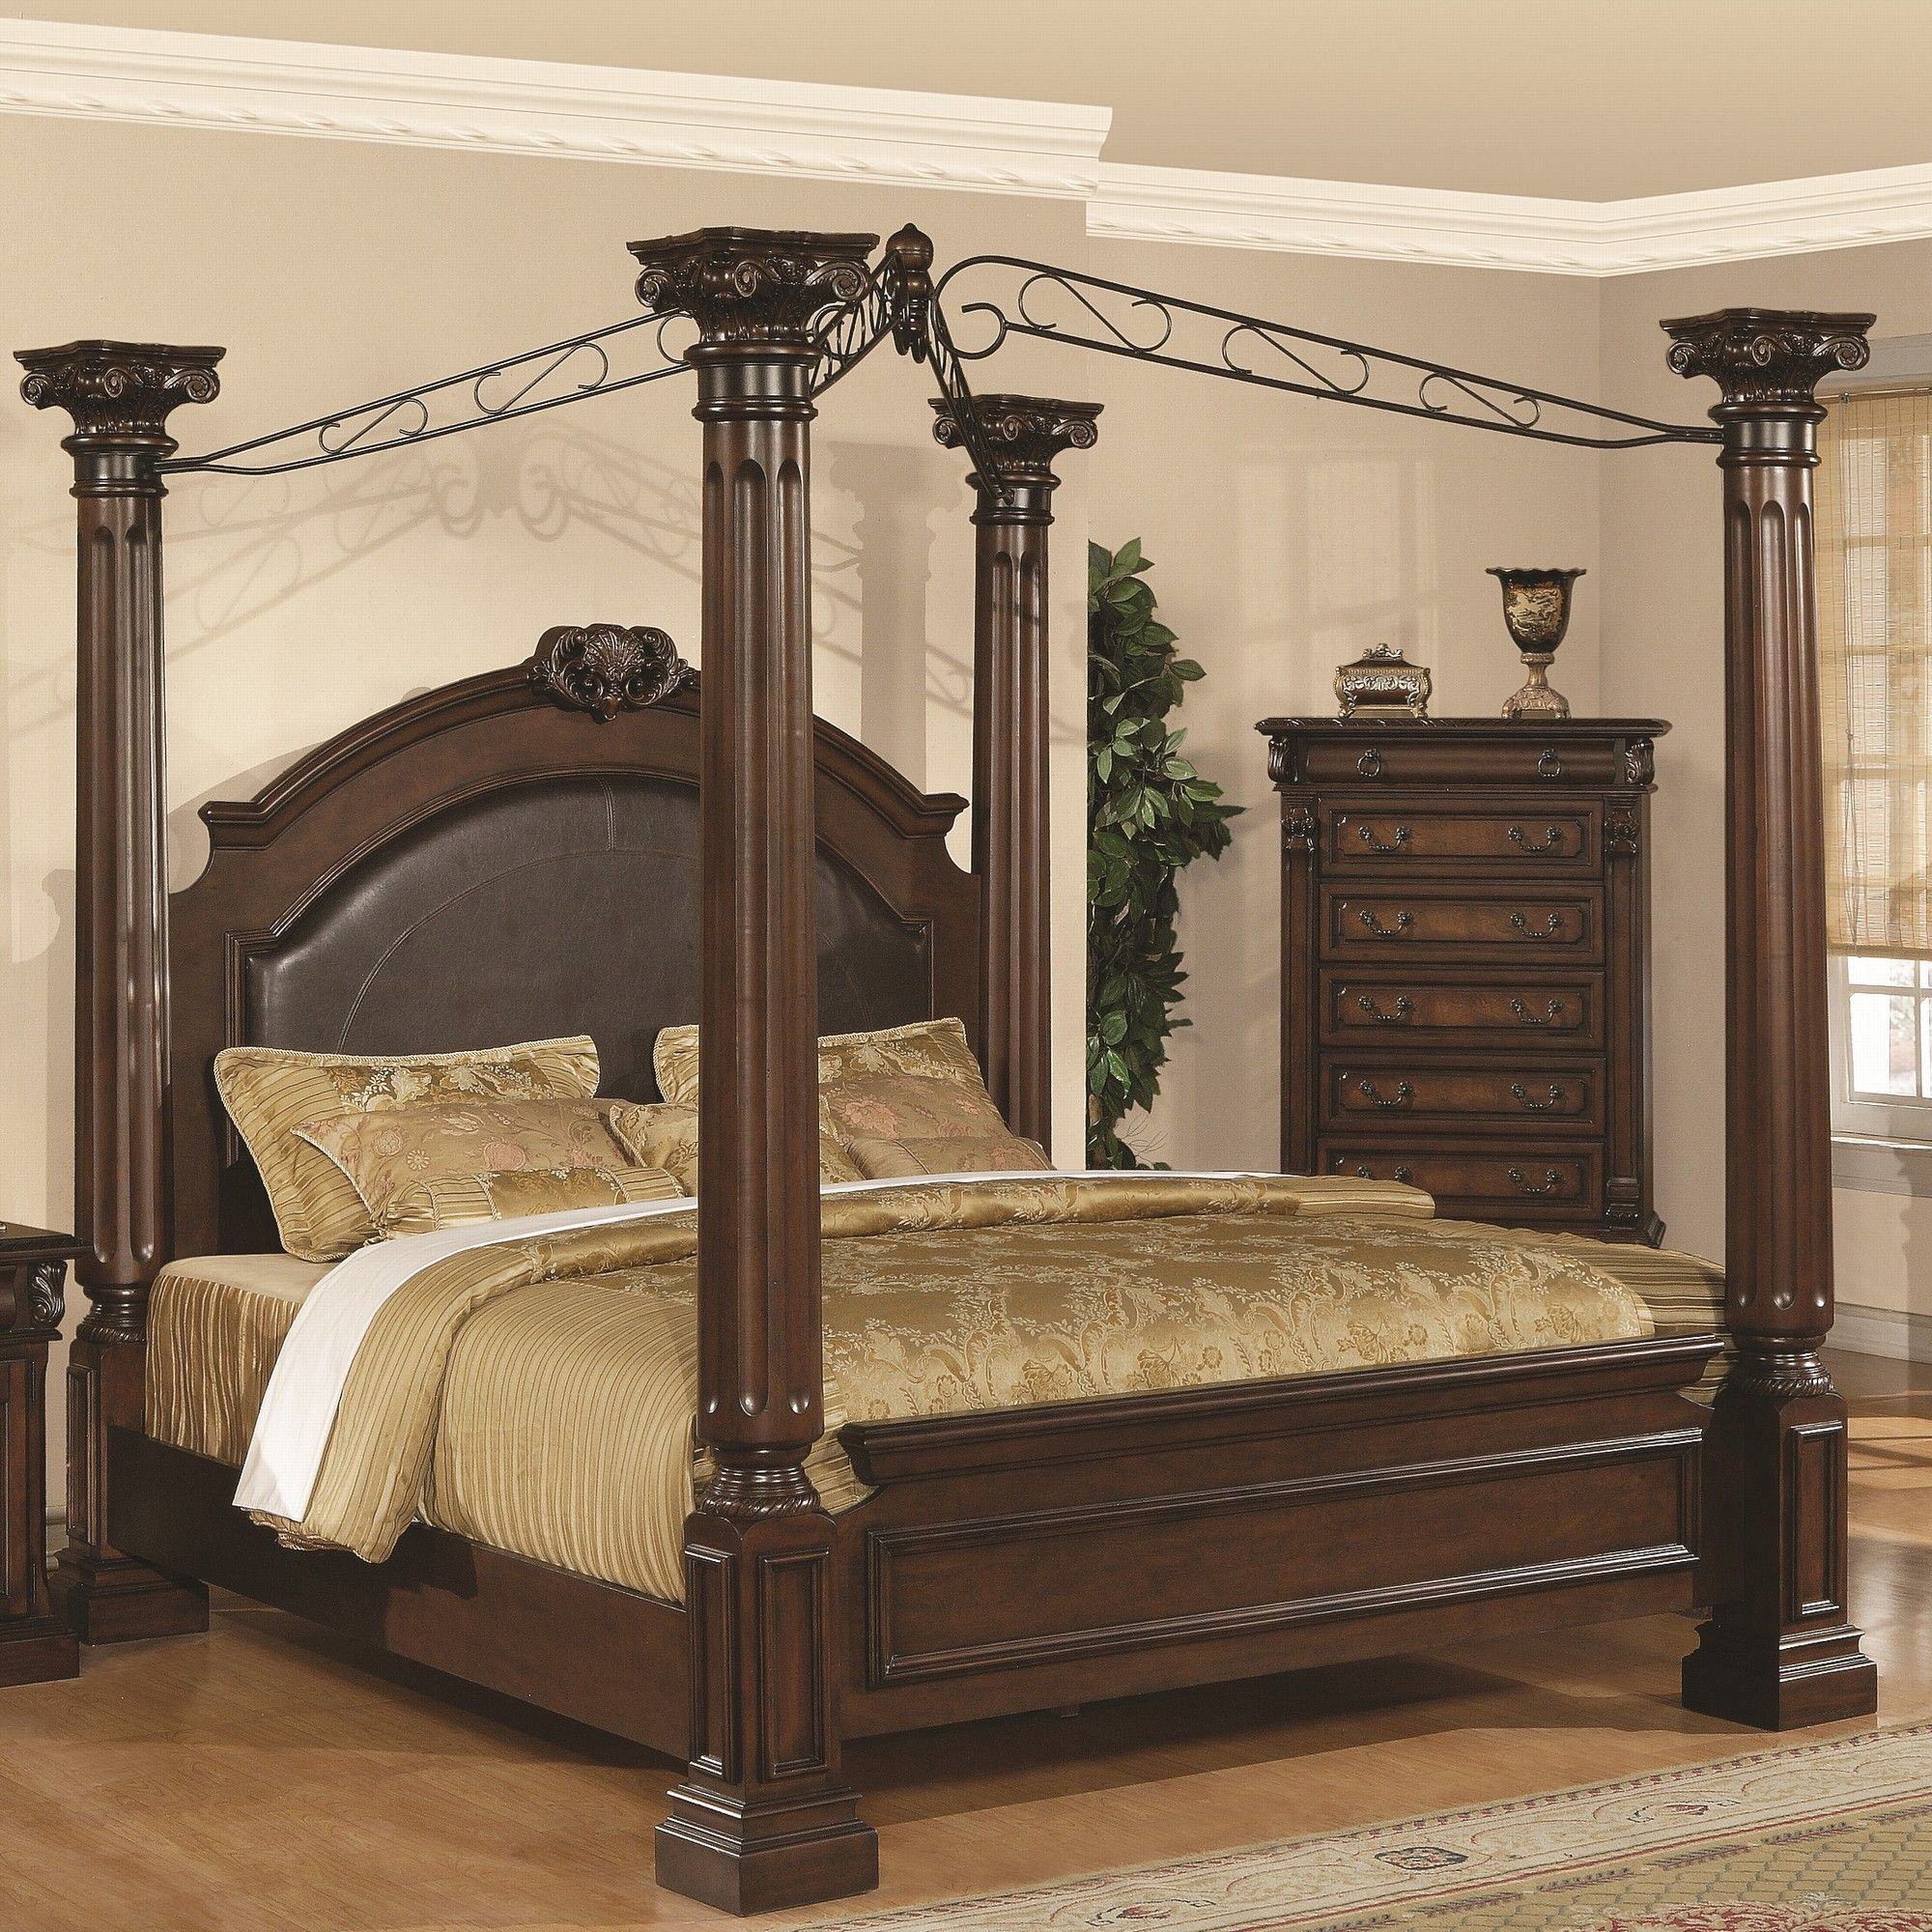 Wildon Home ® Juliet Four Poster Bed & Reviews Wayfair